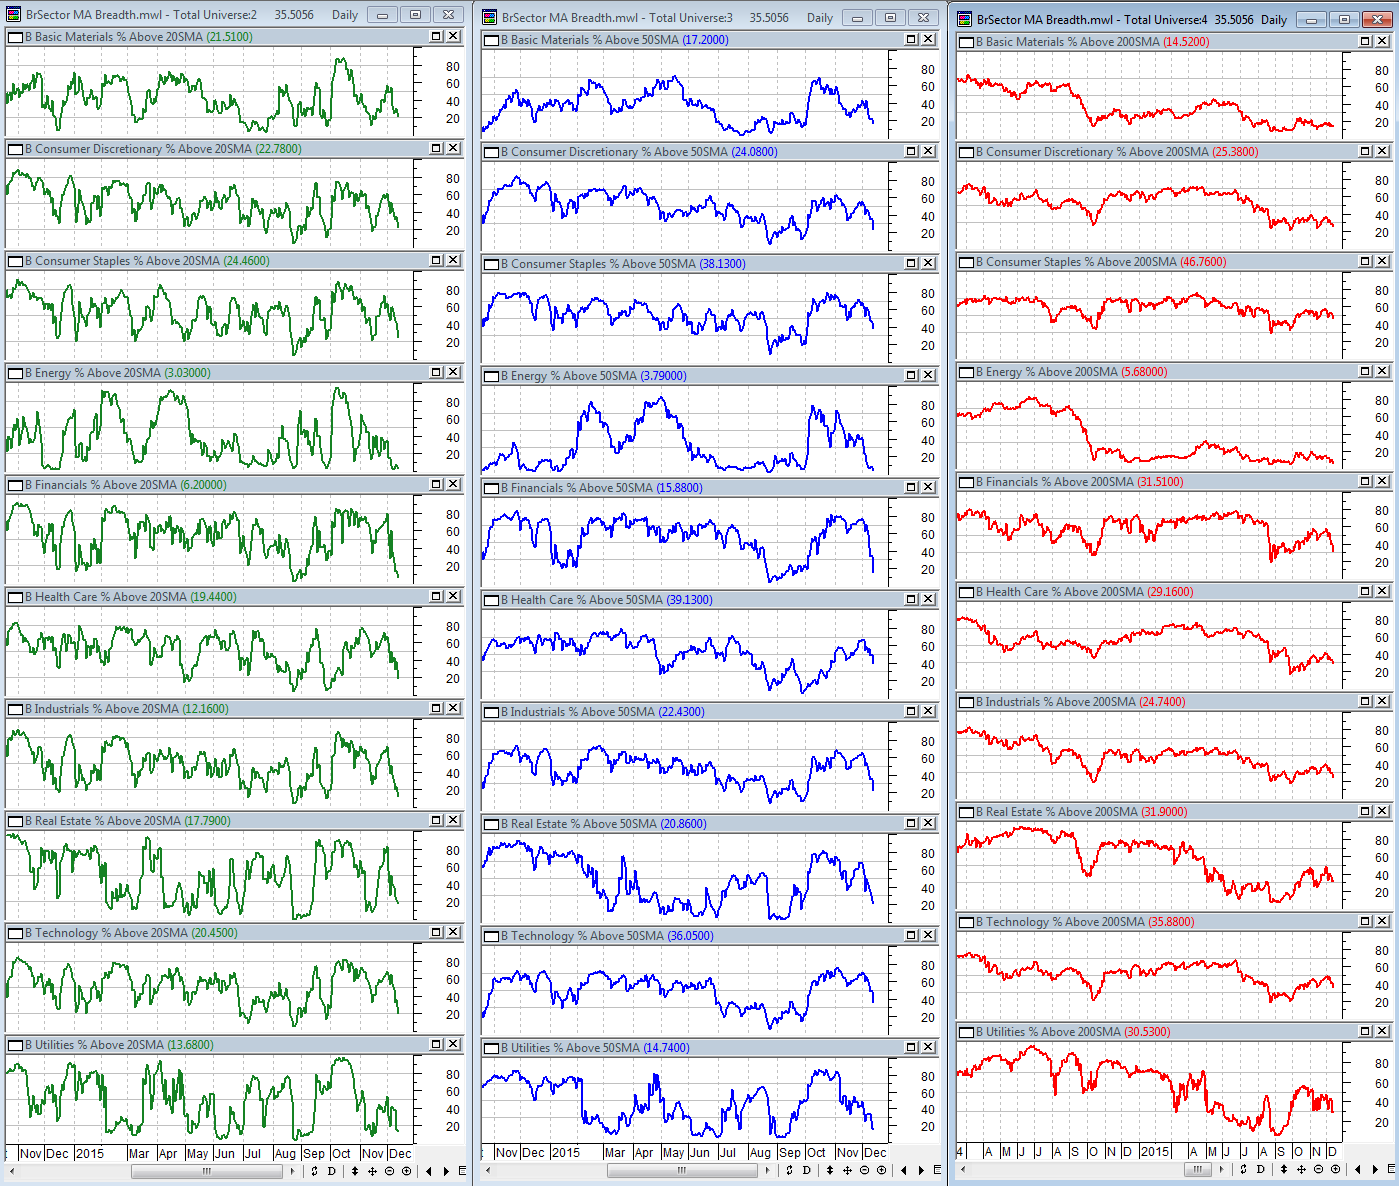 12-11-2015 BSec MA Breadth Dashboard